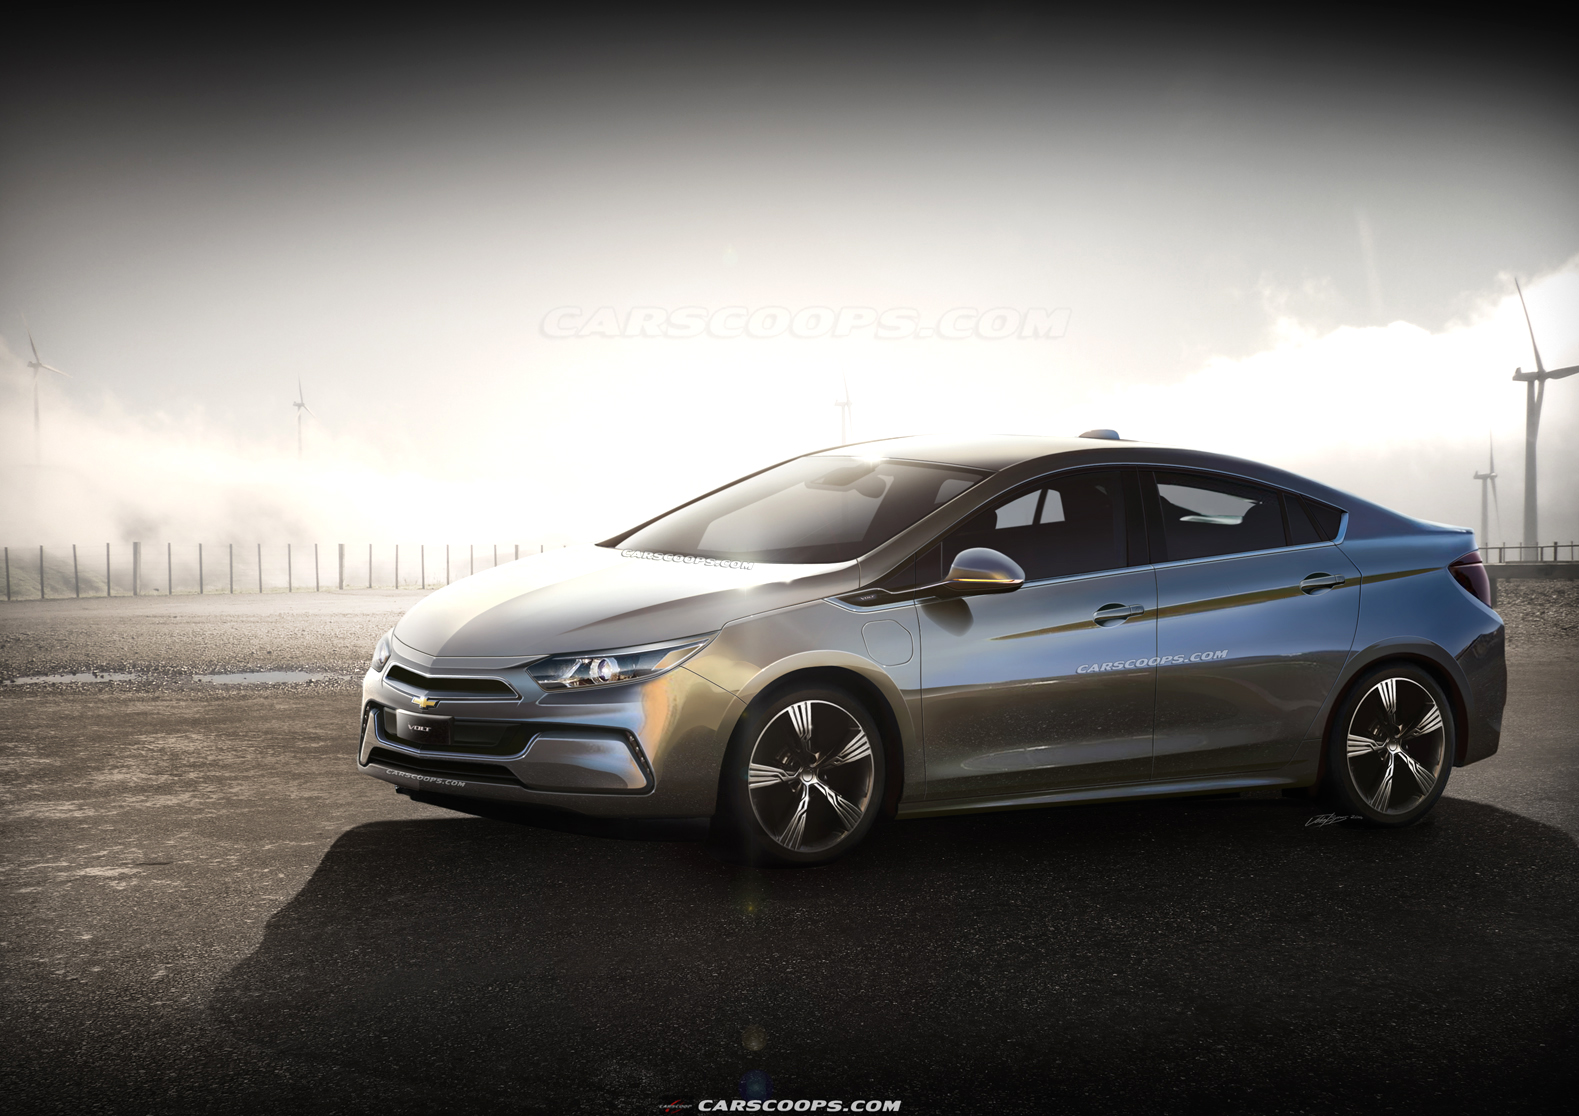 All Chevy chevy 2016 volt : Could this be the true image of the 2016 Chevy Volt?